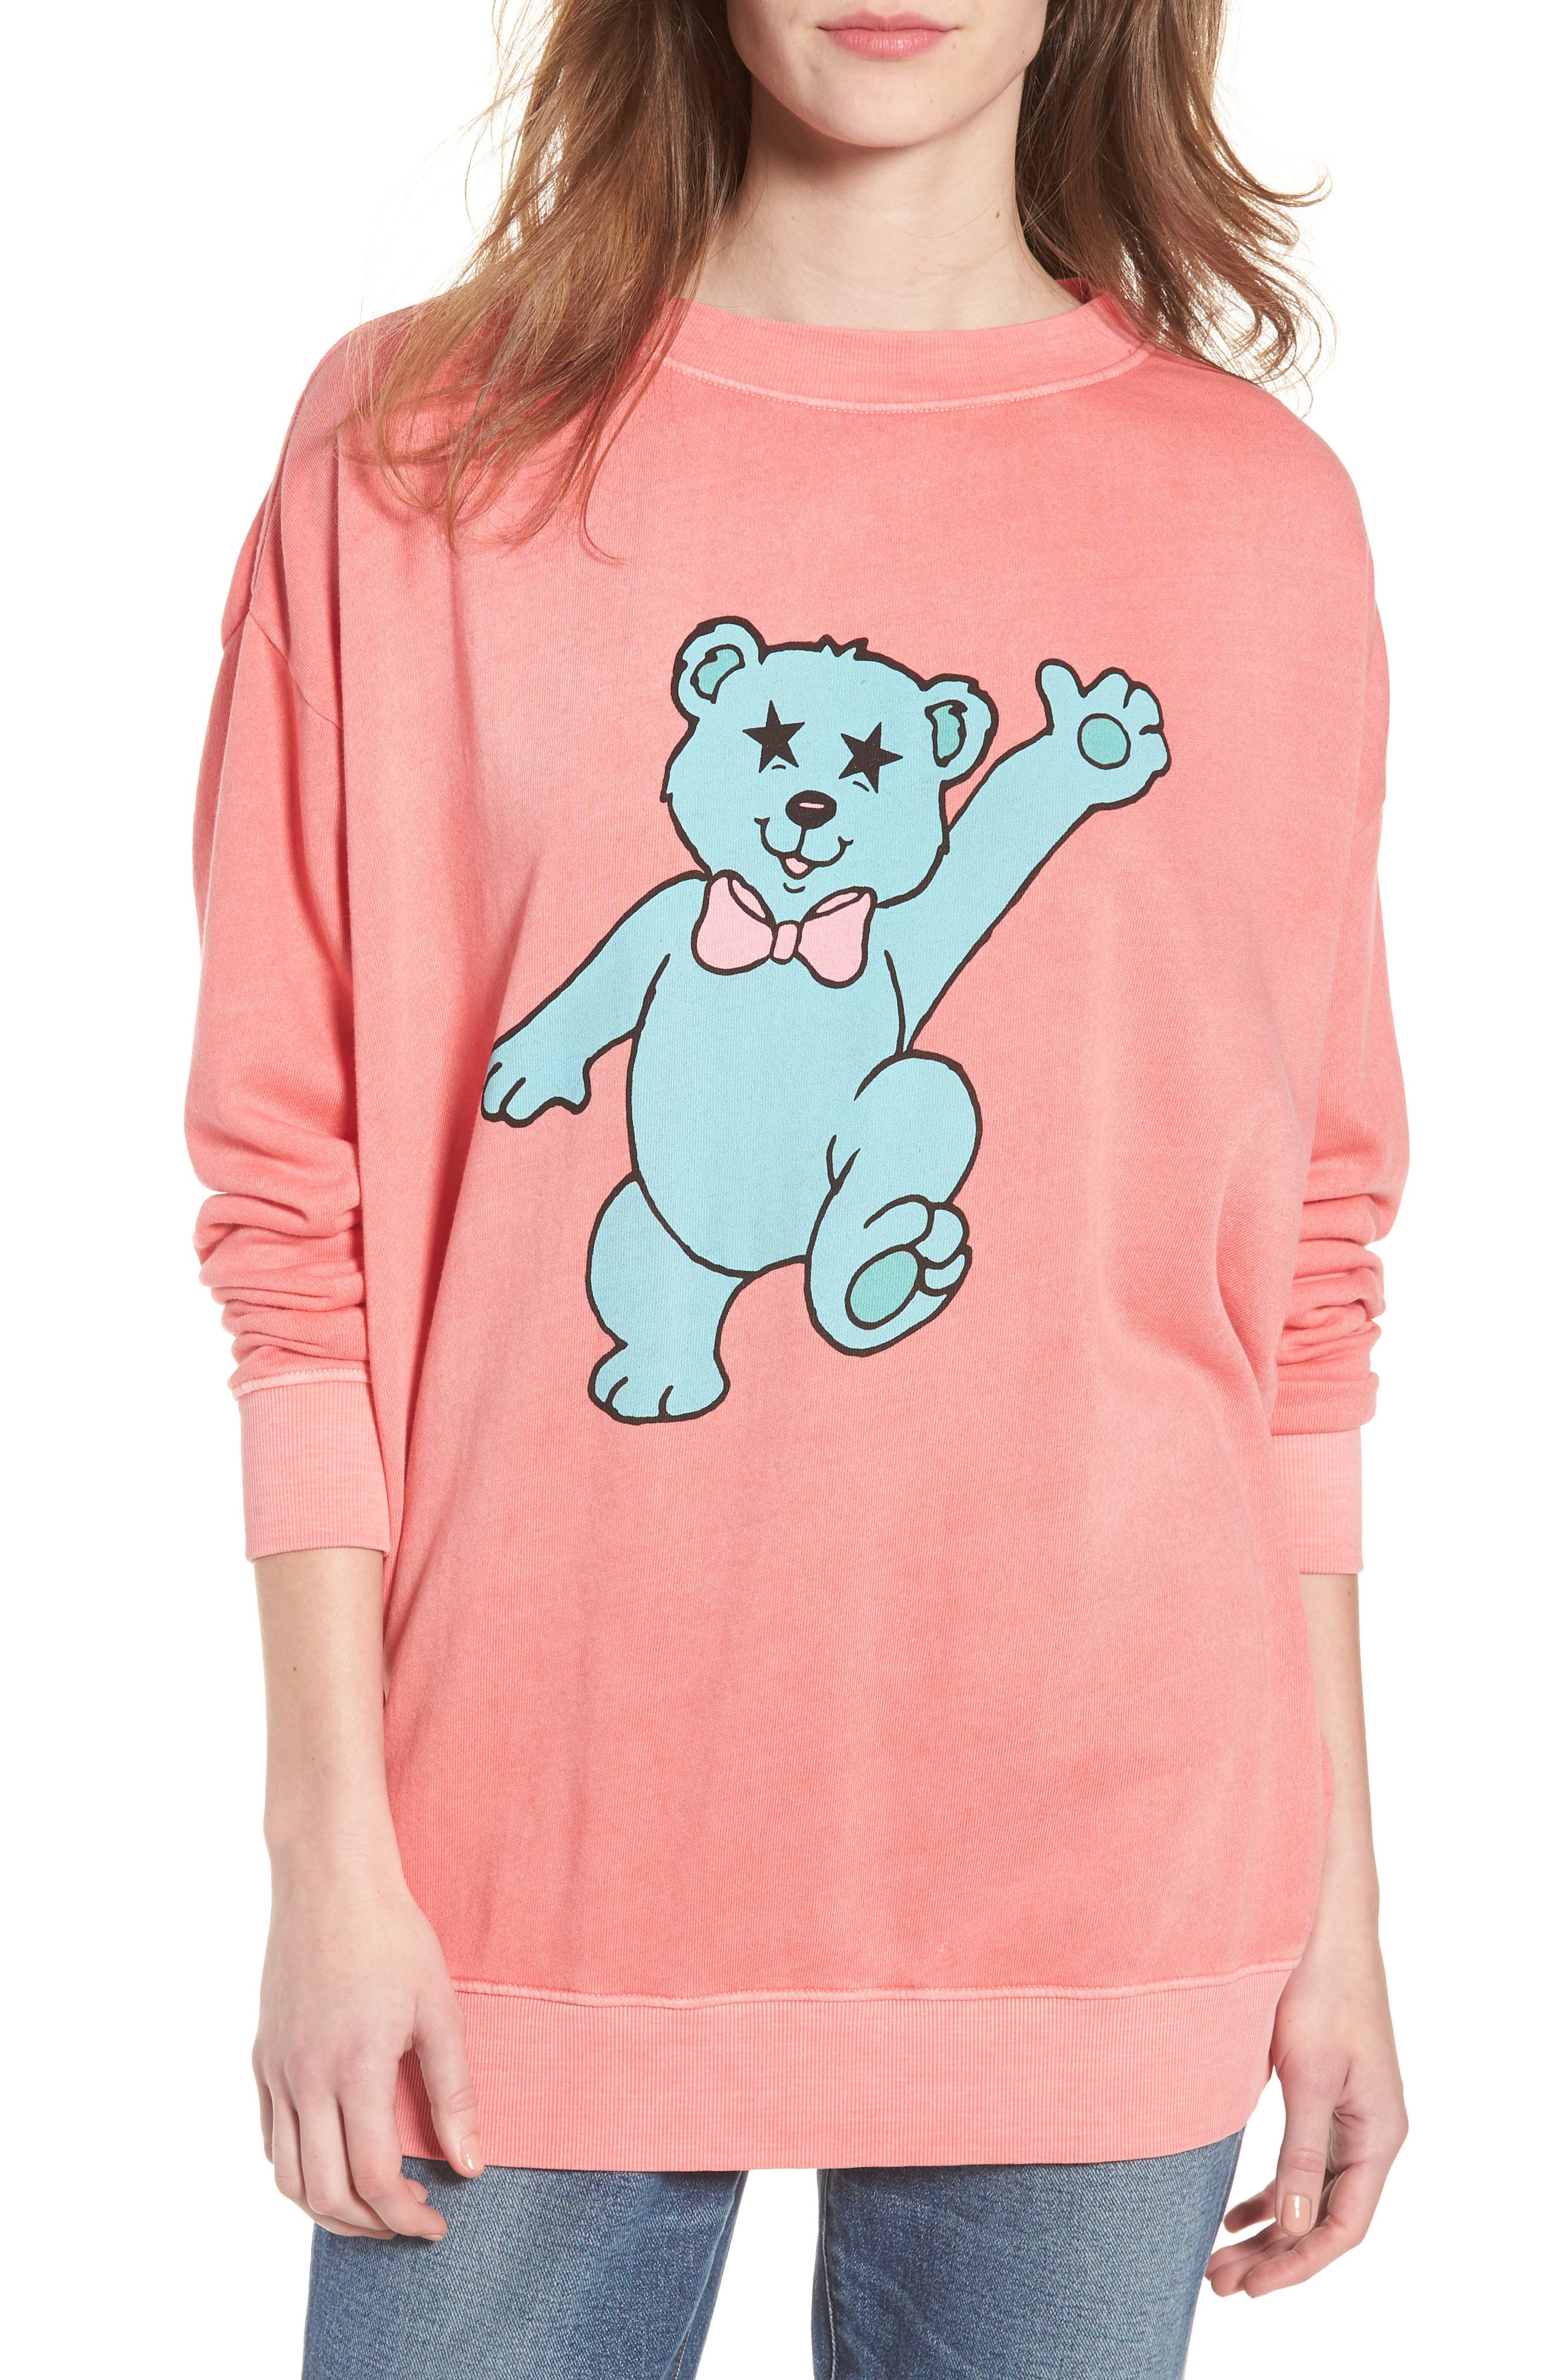 Groovy Teddy Road Trip Pullover Sweatshirt,                             Main thumbnail 1, color,                             Pigment Red Flare